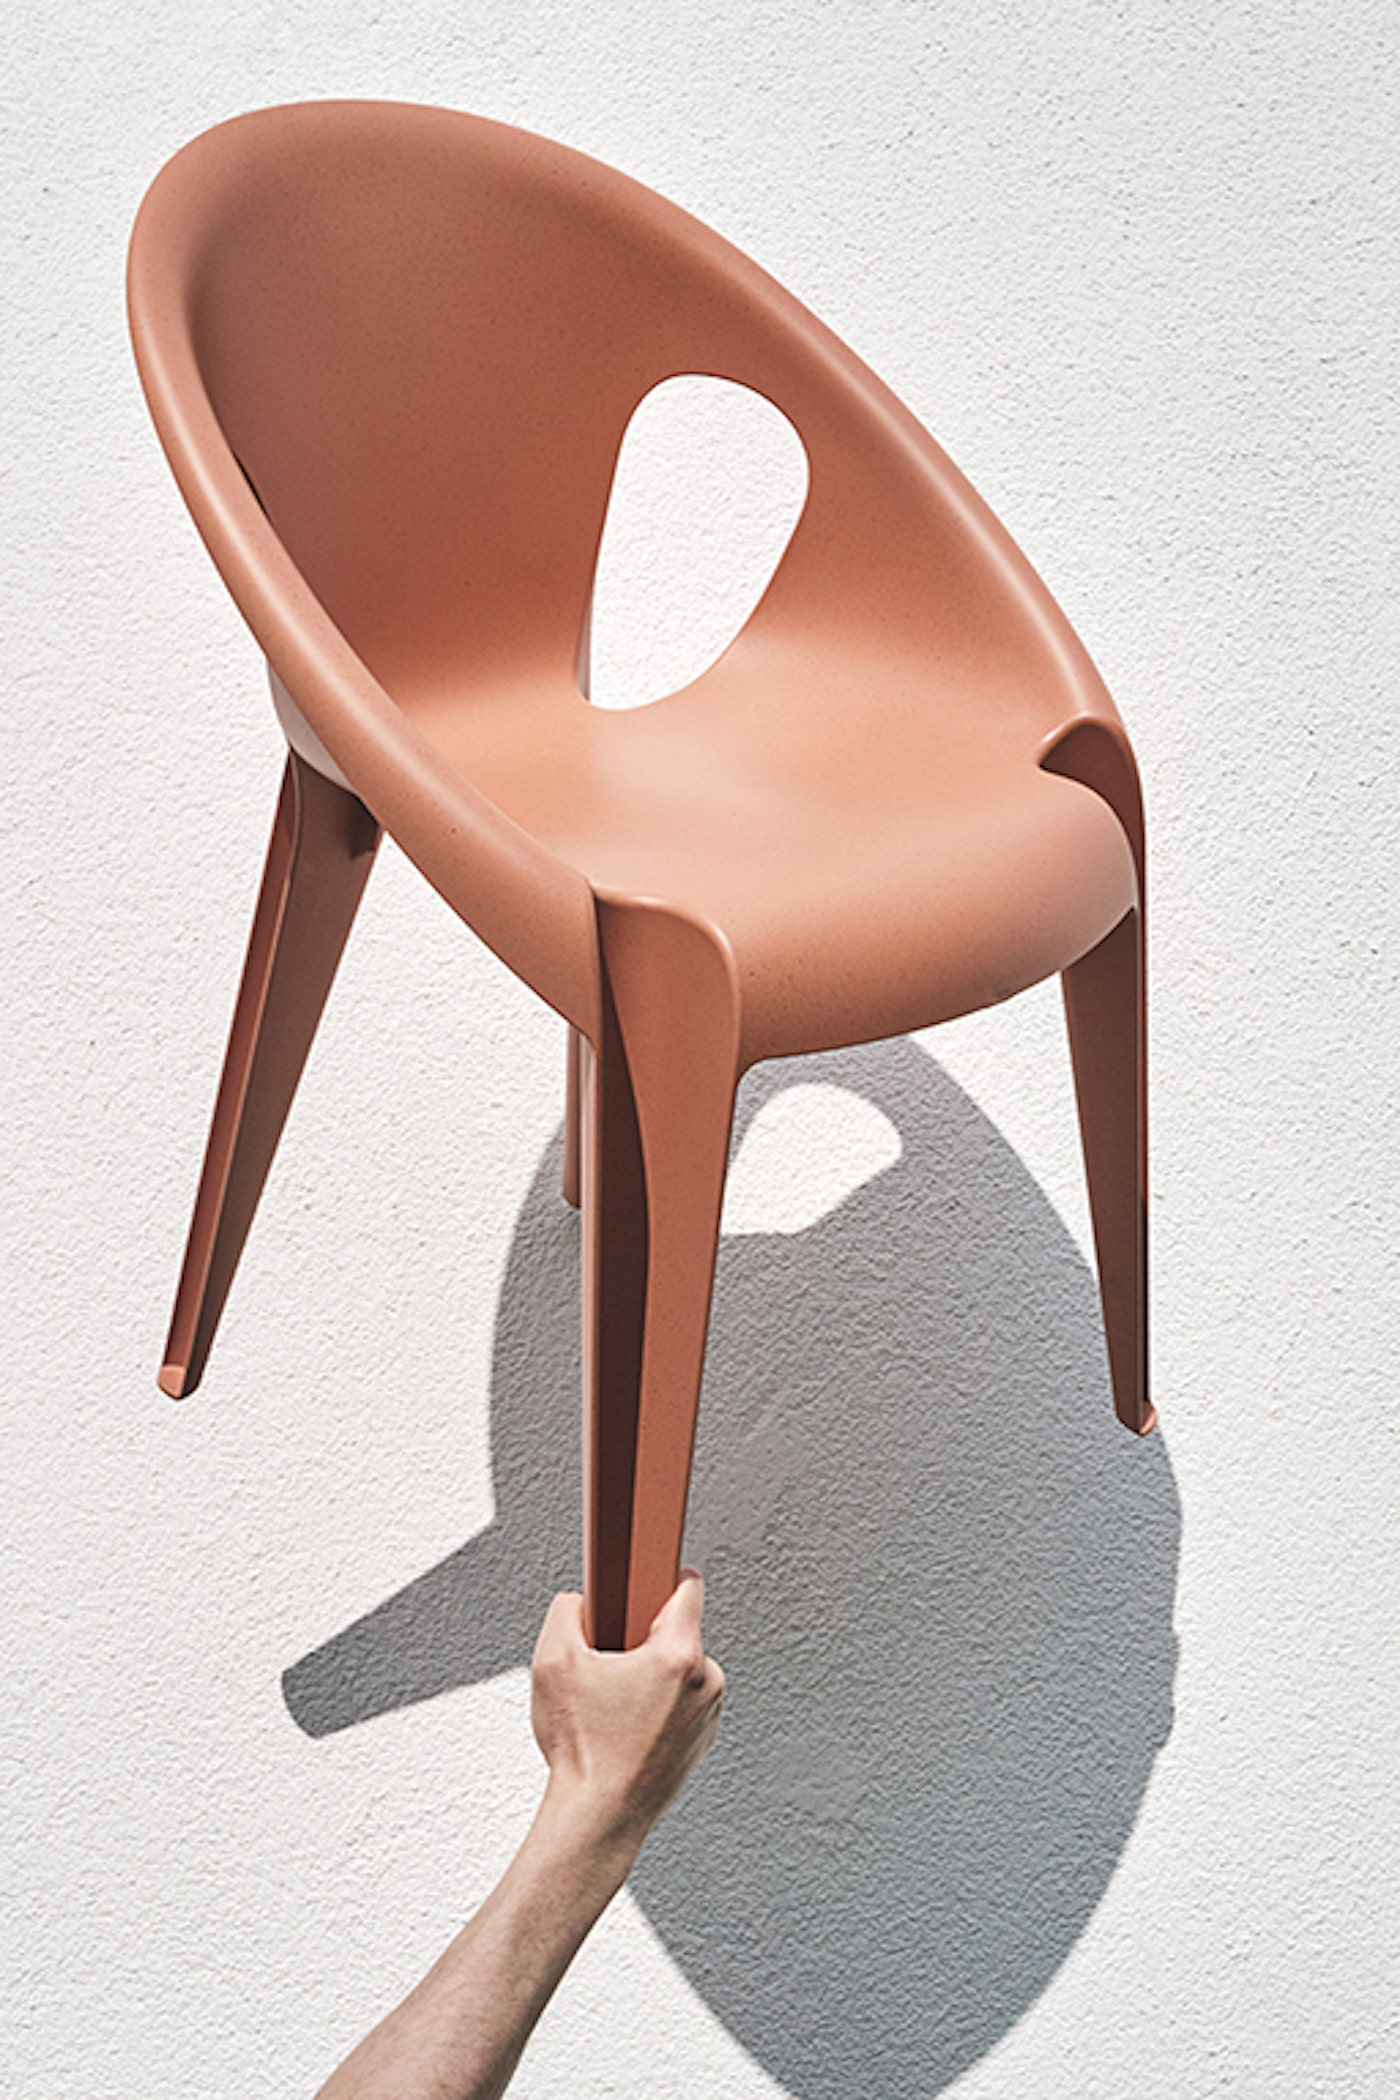 Eco Edition_Konstantin Grcic Design_Bell Chair_Sustainable architecture interiors products 3-min